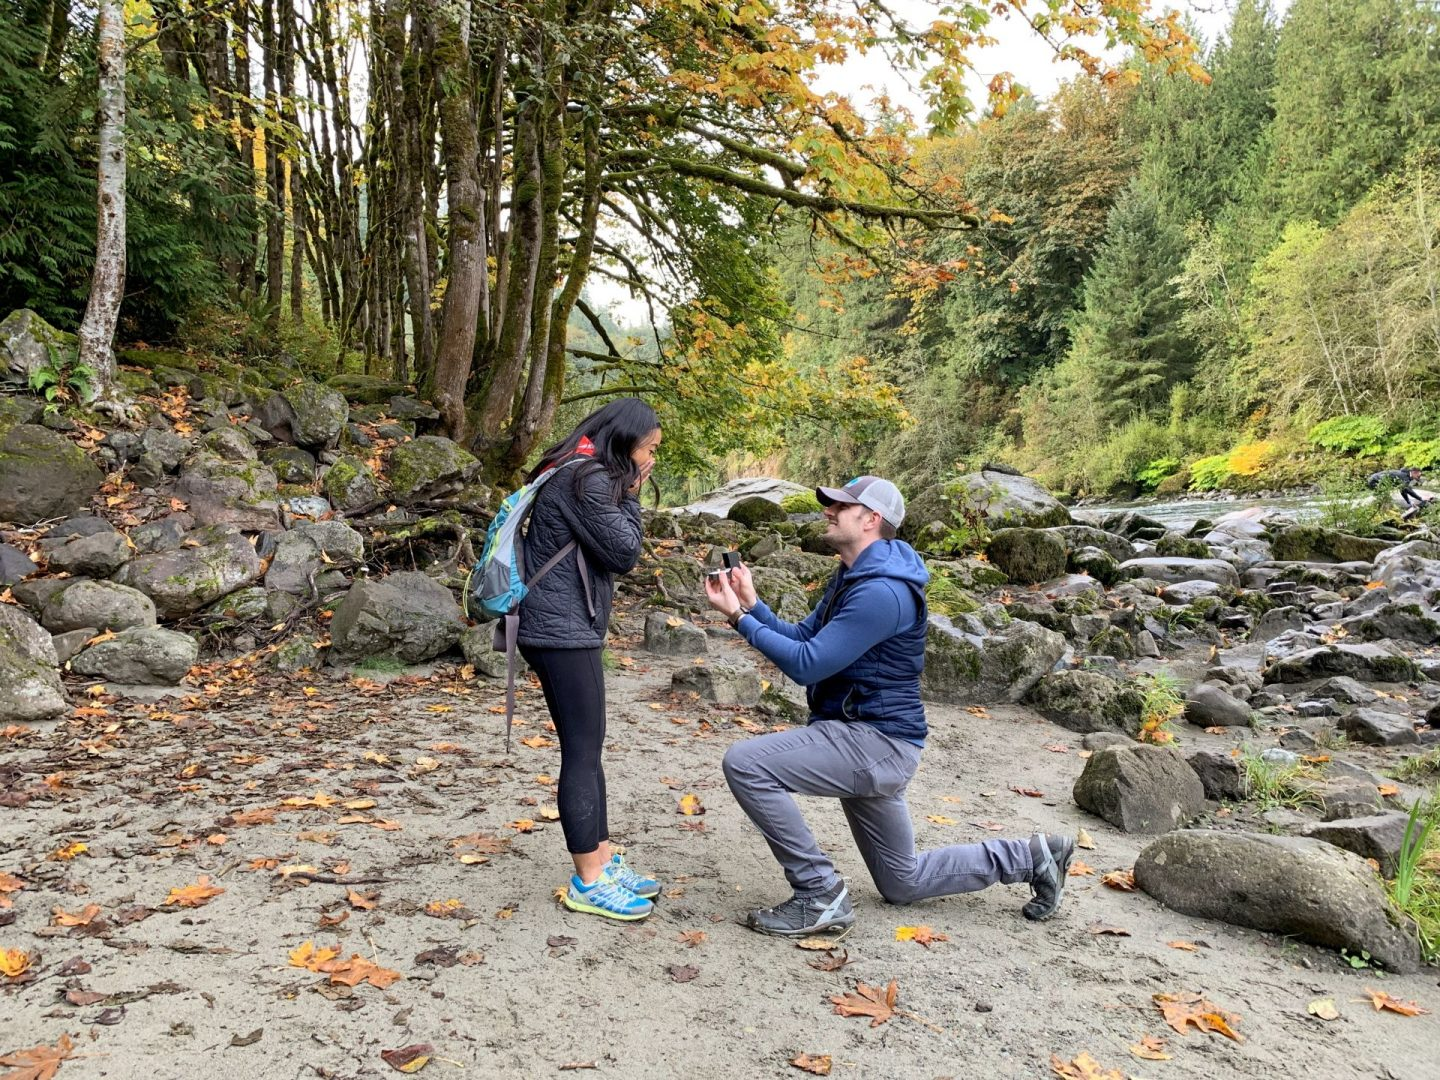 When he asked: our proposal story